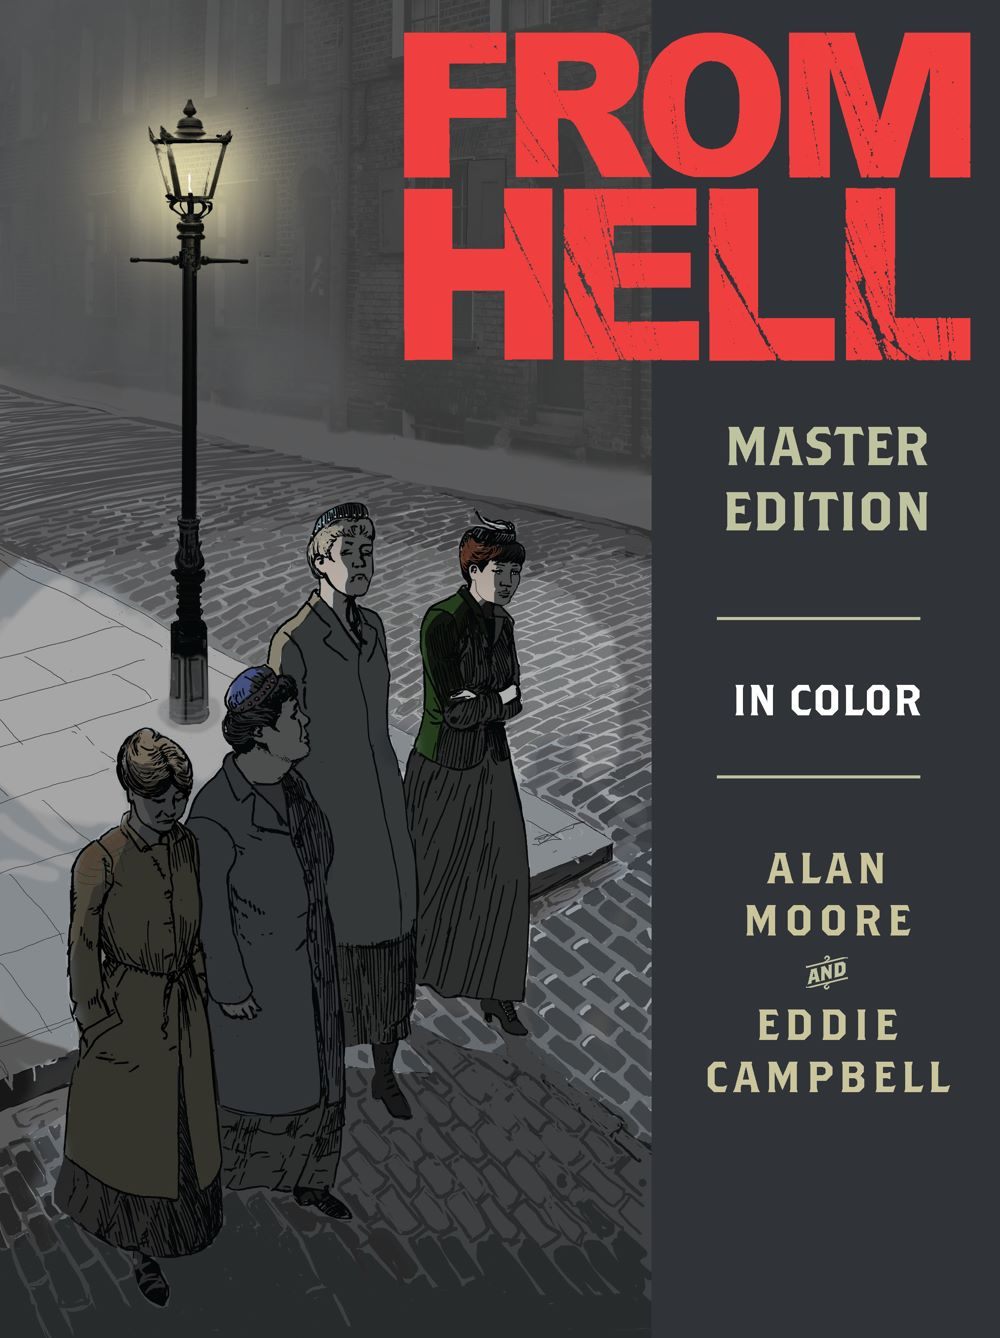 52e14d20-457b-4dfa-be36-0434de73281d FROM HELL to be released in full cover Master Edition